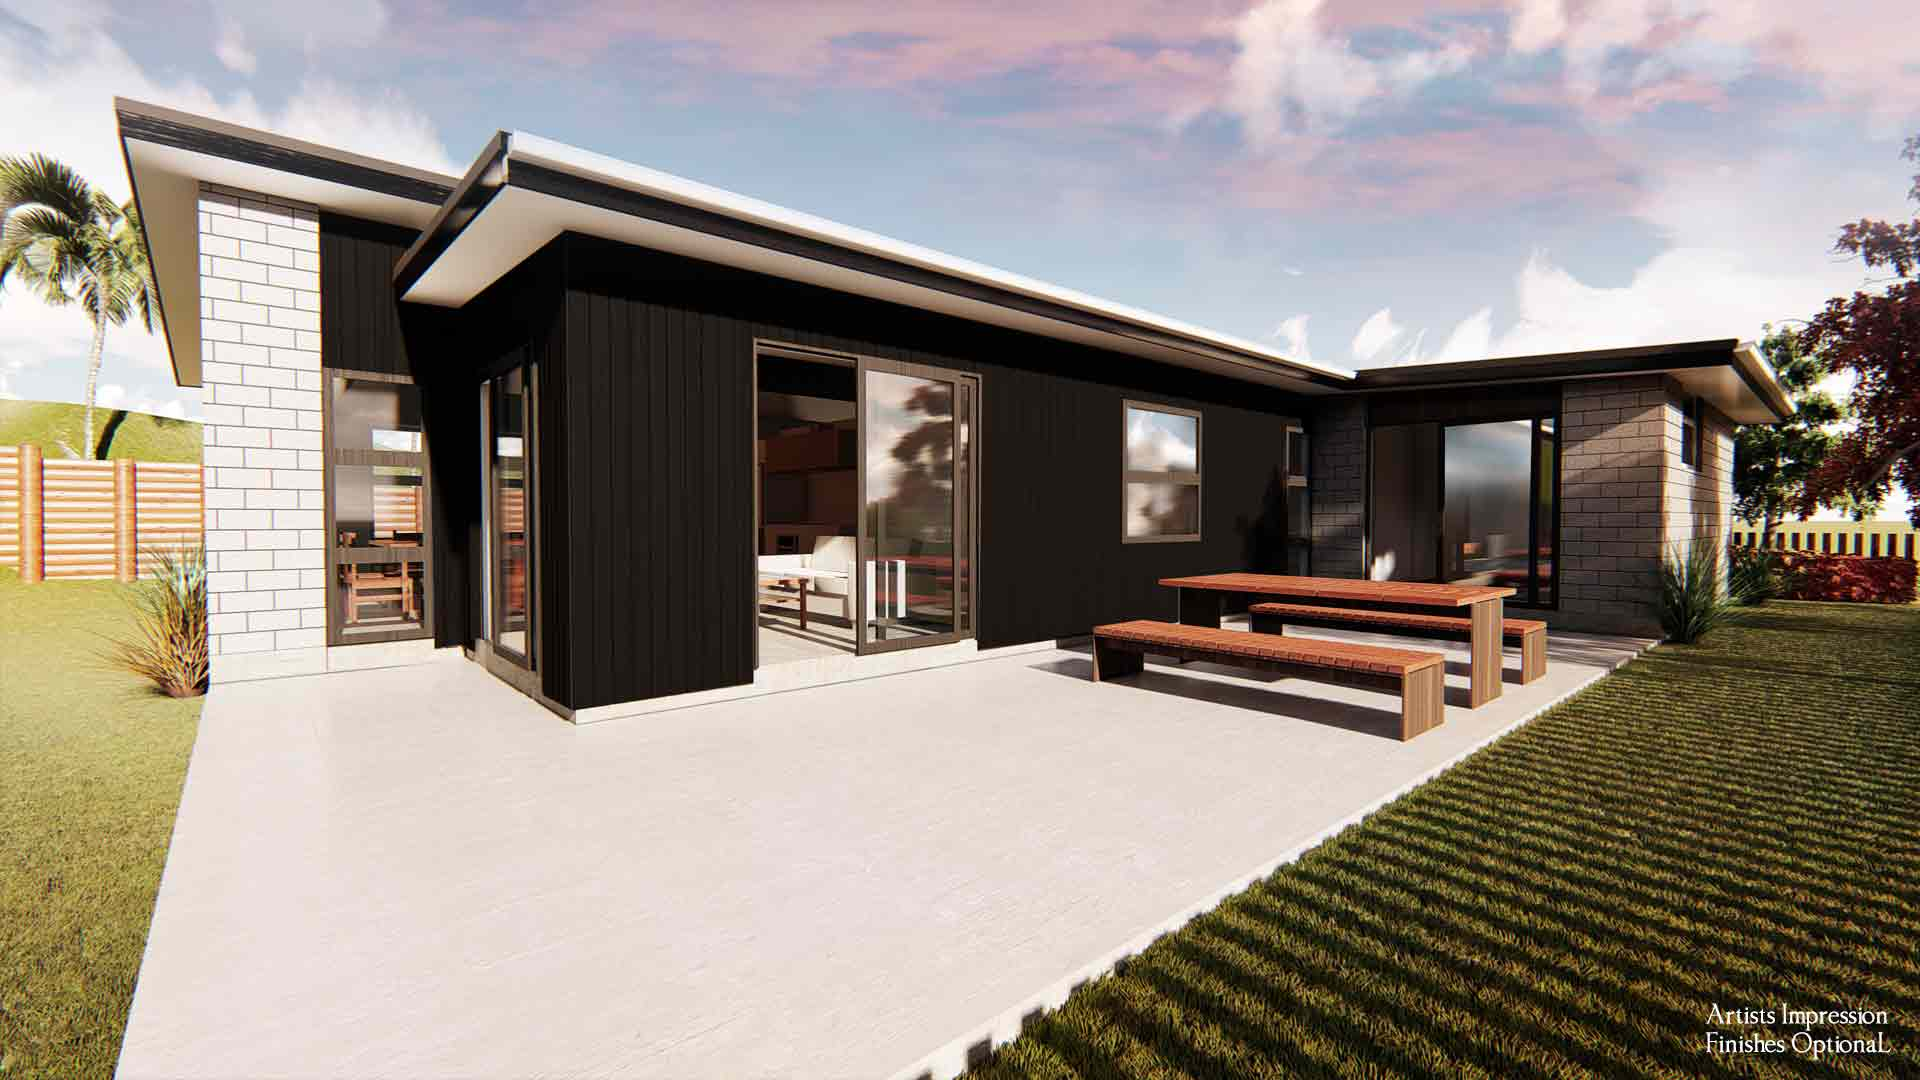 Lot 541 The Lakes, Tauranga